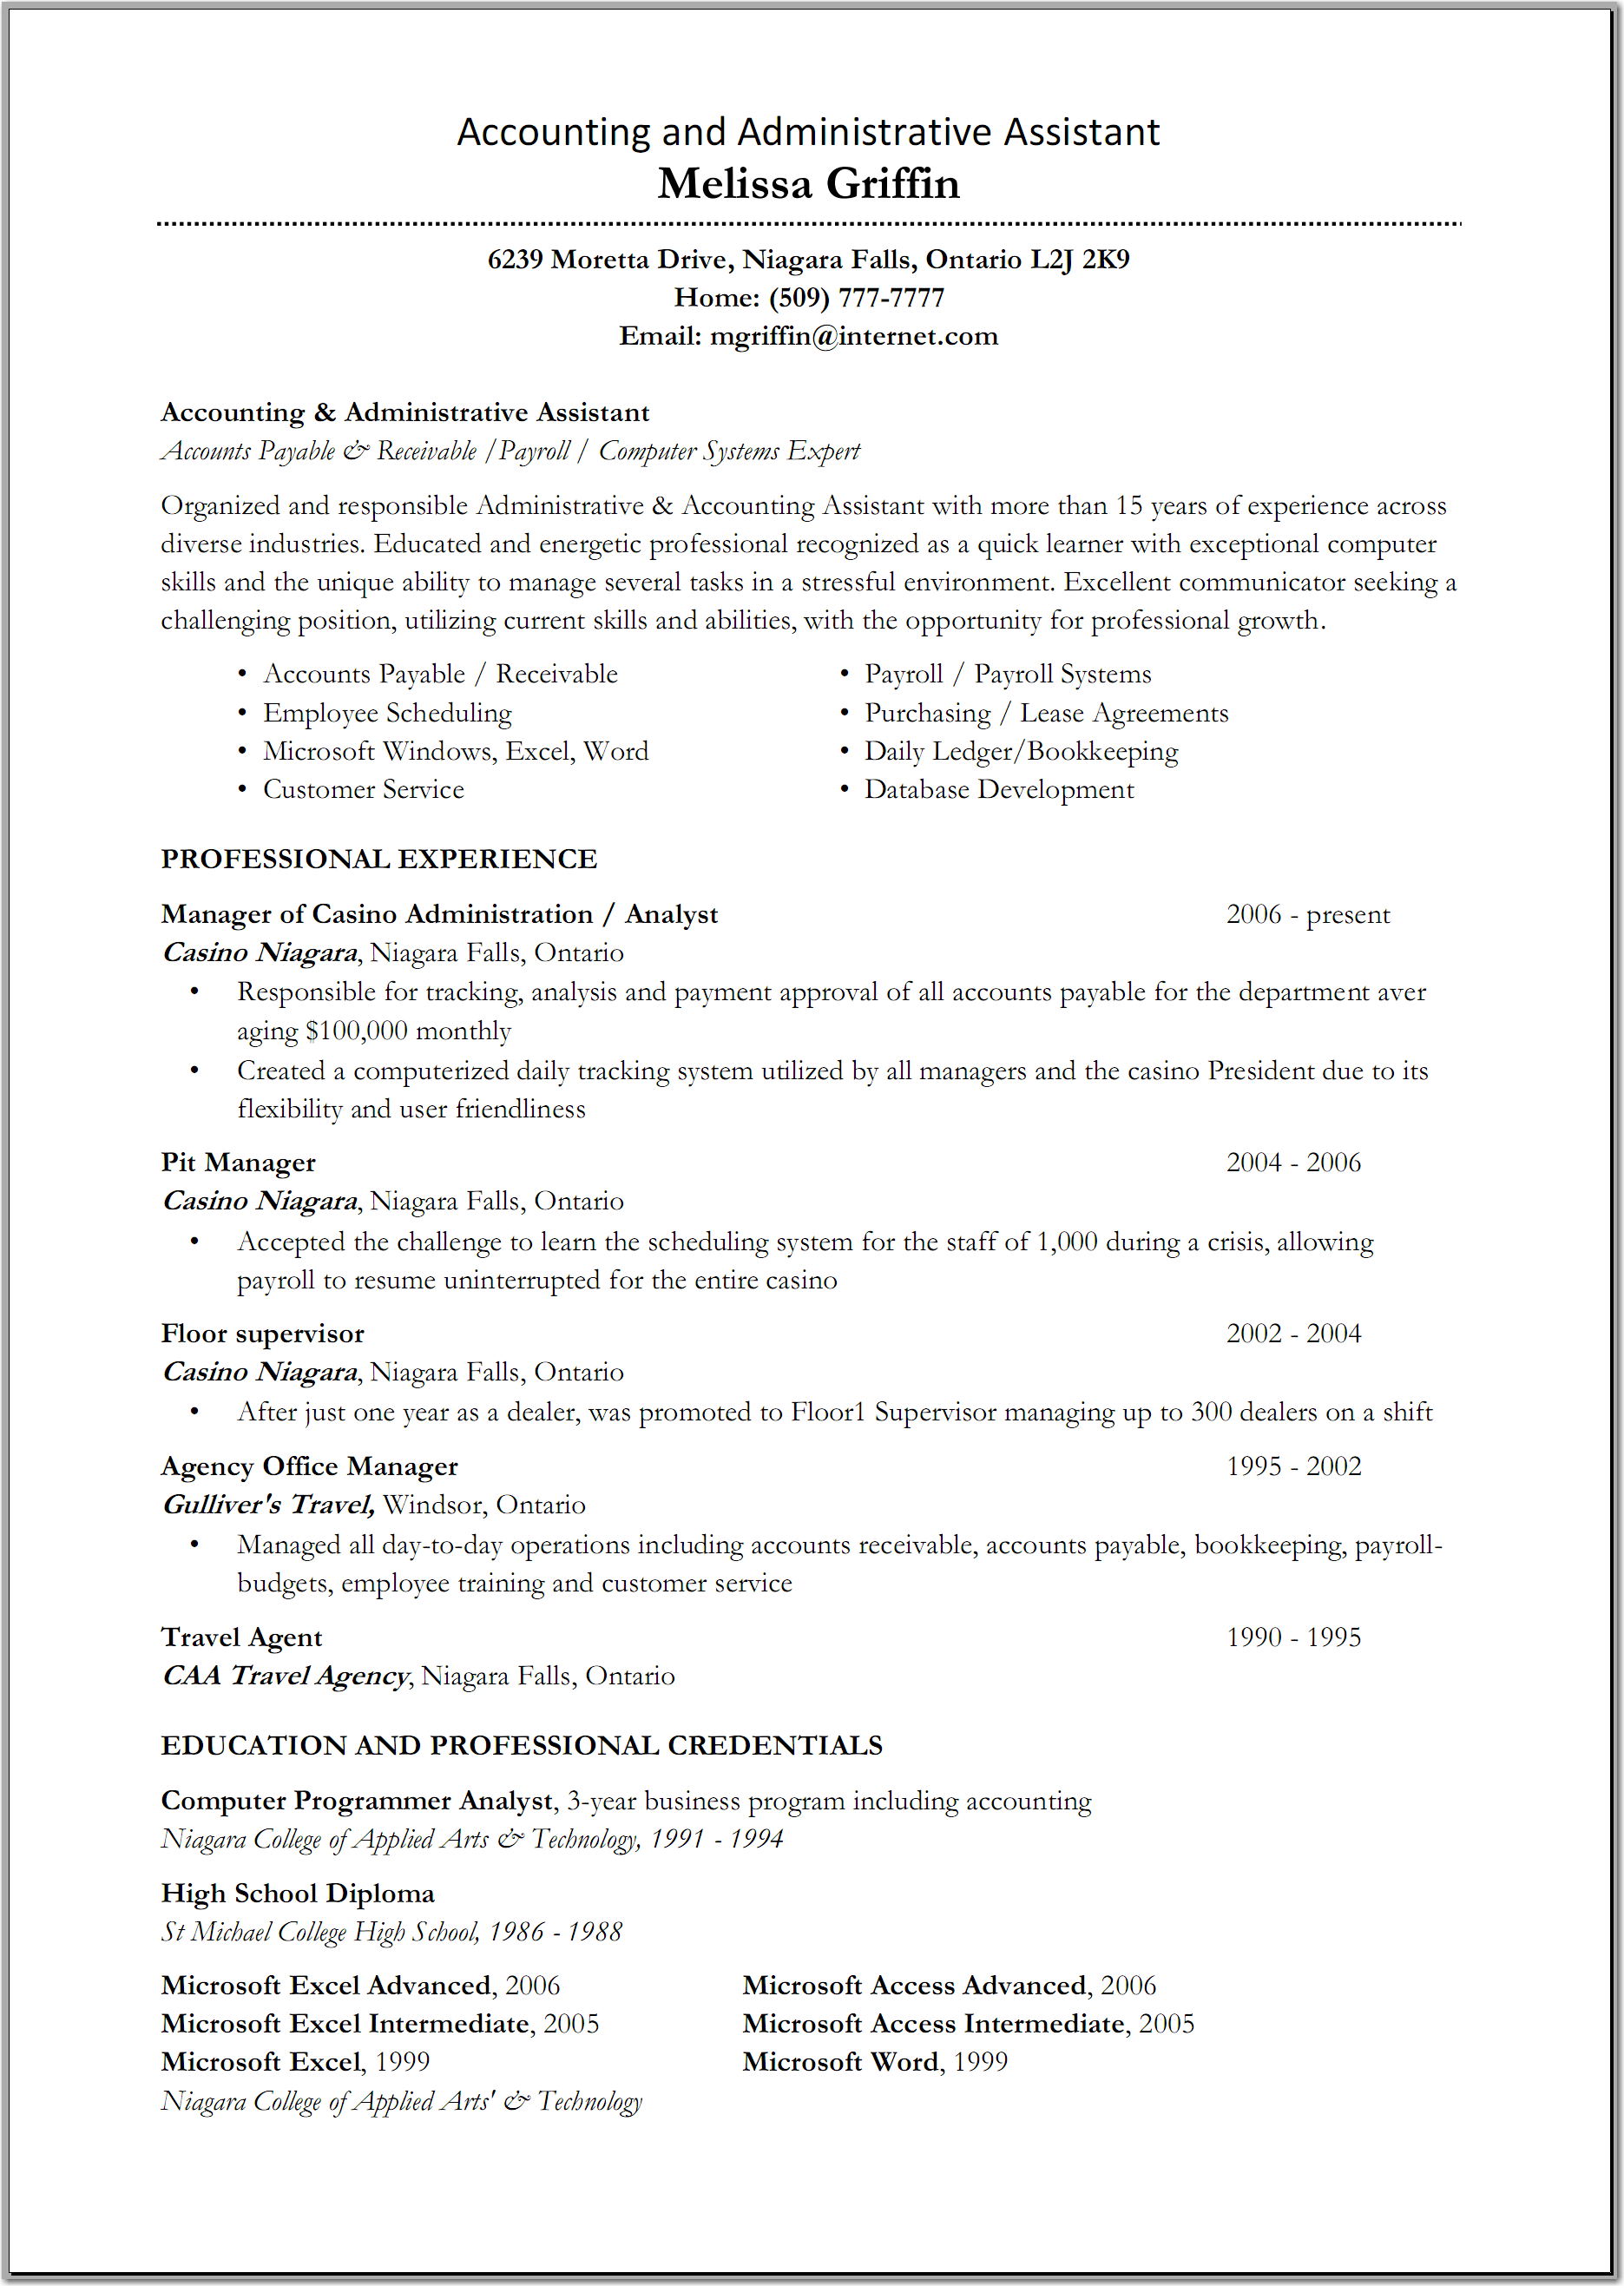 Office Manager Resume Objective Administration Resume Sample Resumecompanion #career